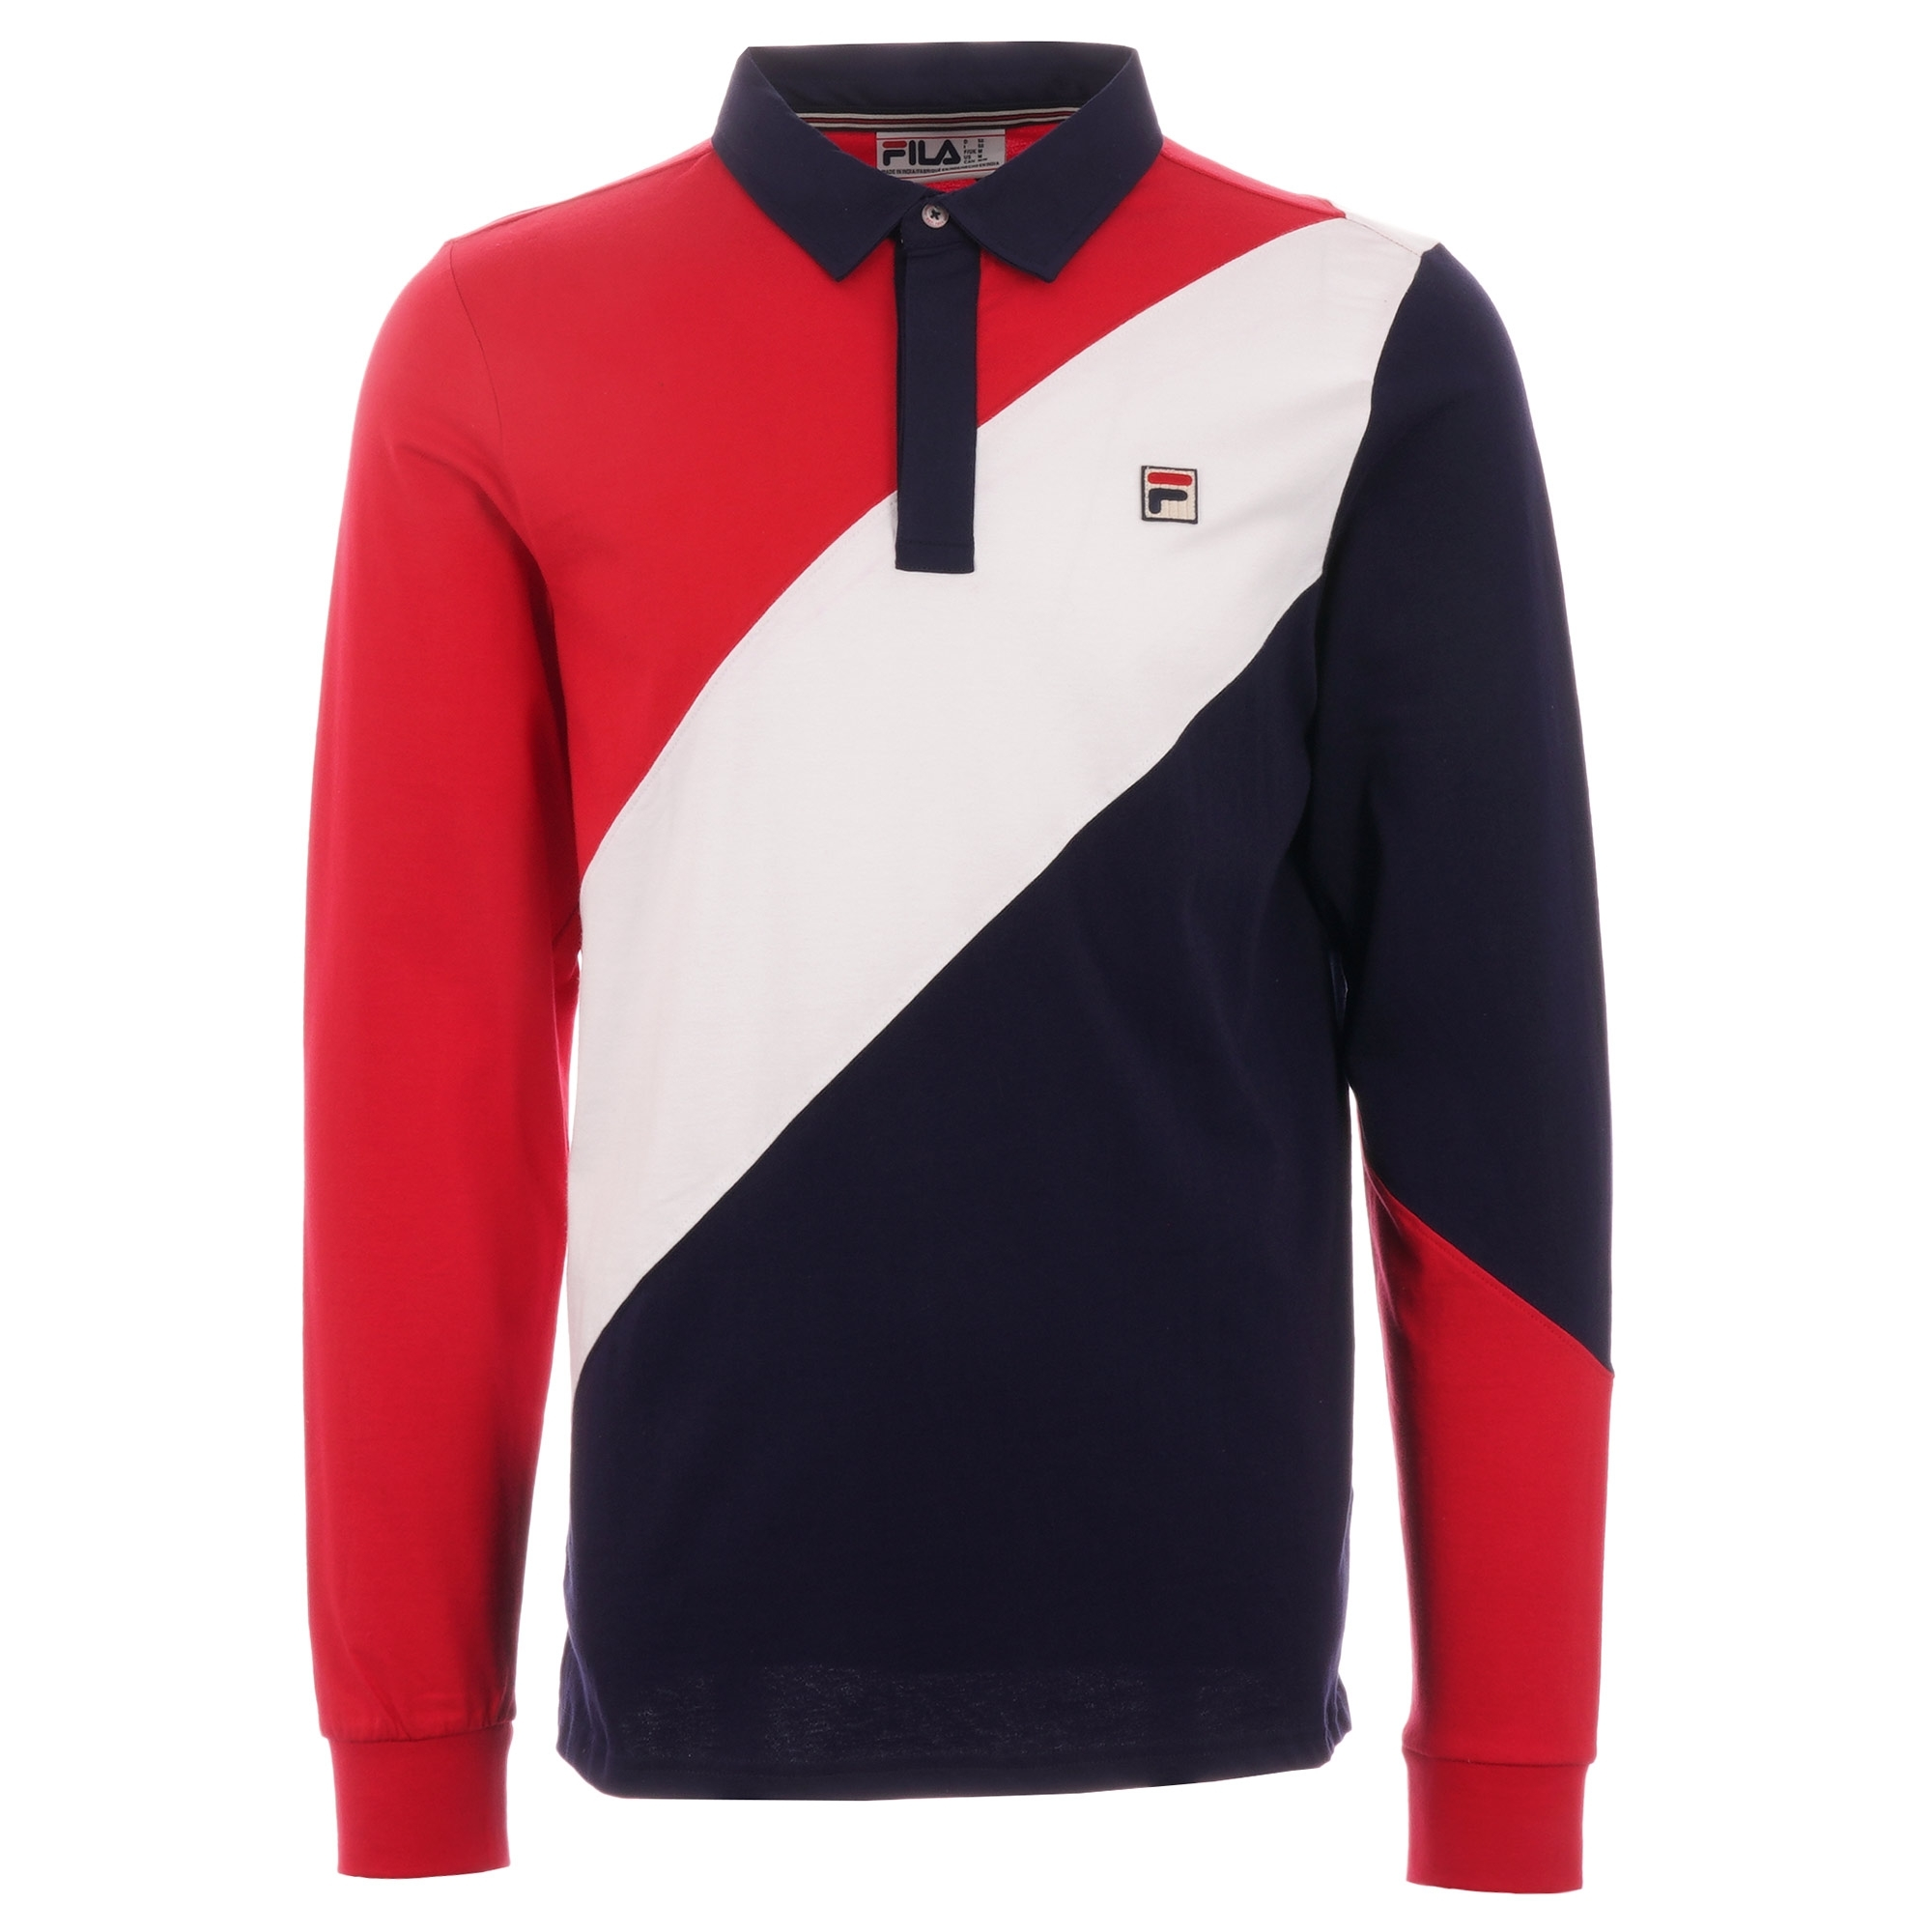 Mazen Long Sleeve Polo Shirt - Peacoat, Chinese Red & White